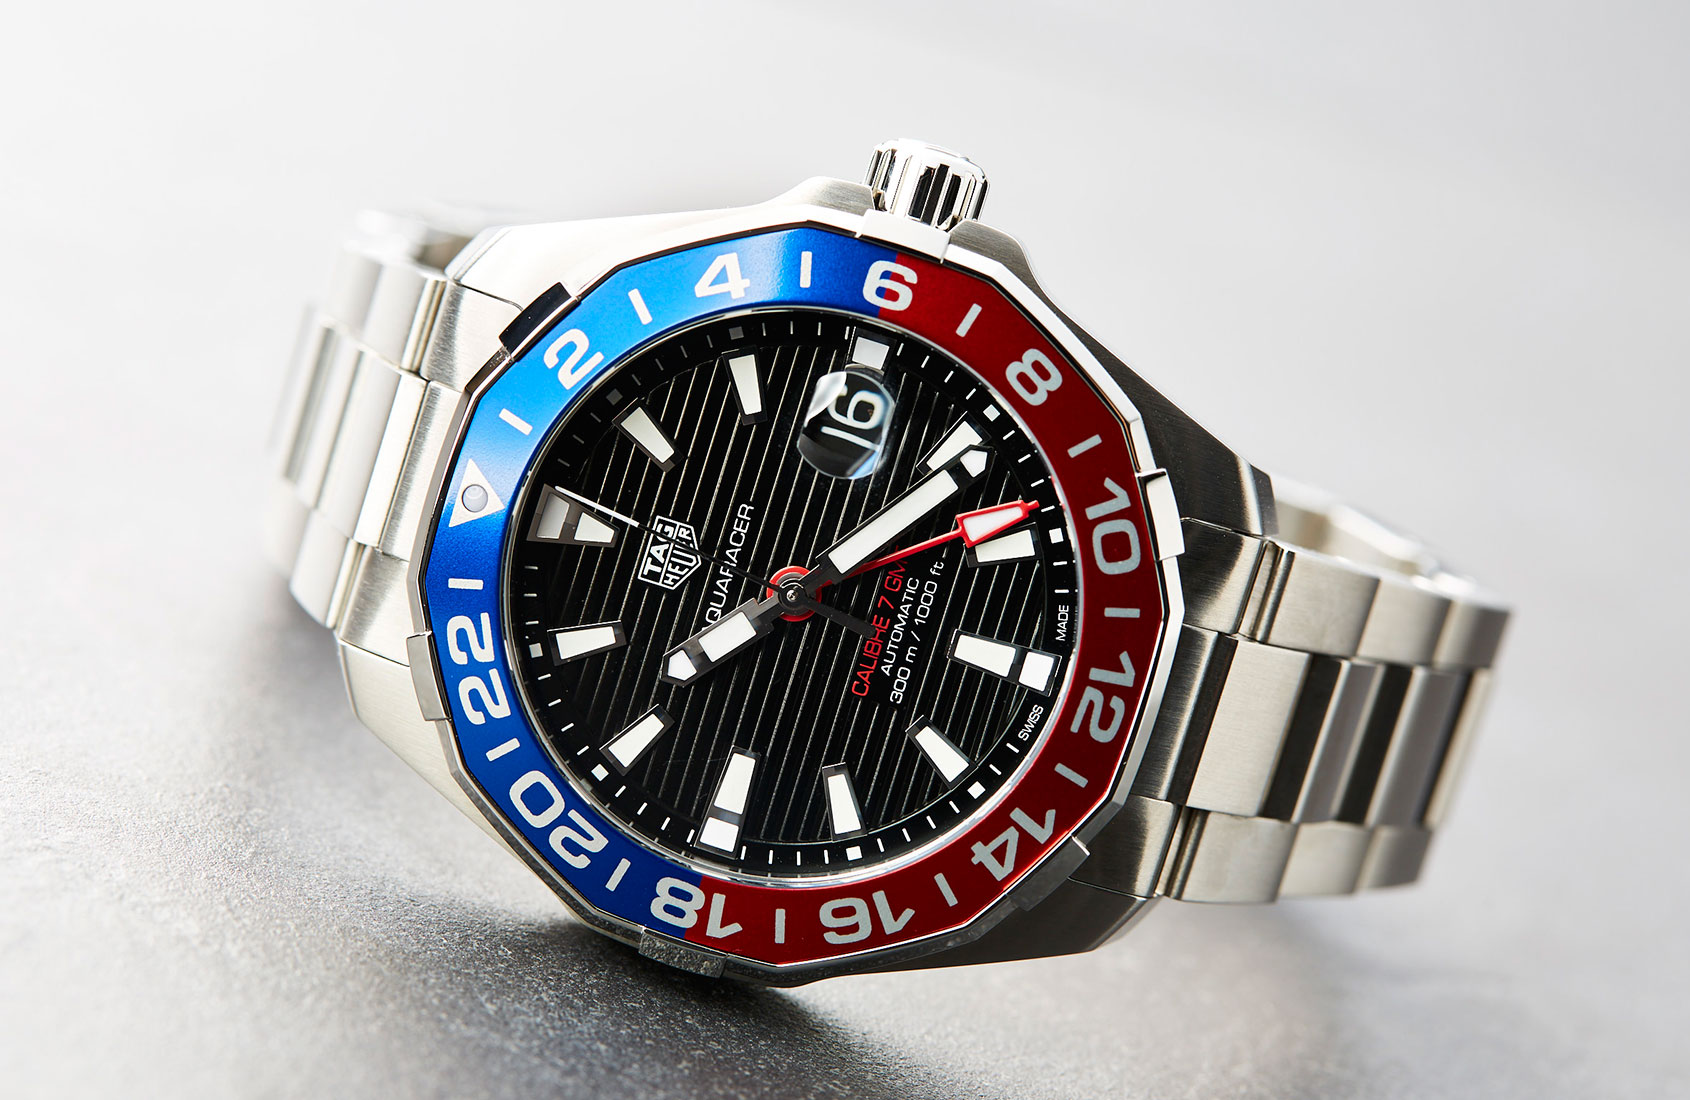 HANDS-ON: The TAG Heuer Aquaracer Calibre 7 GMT